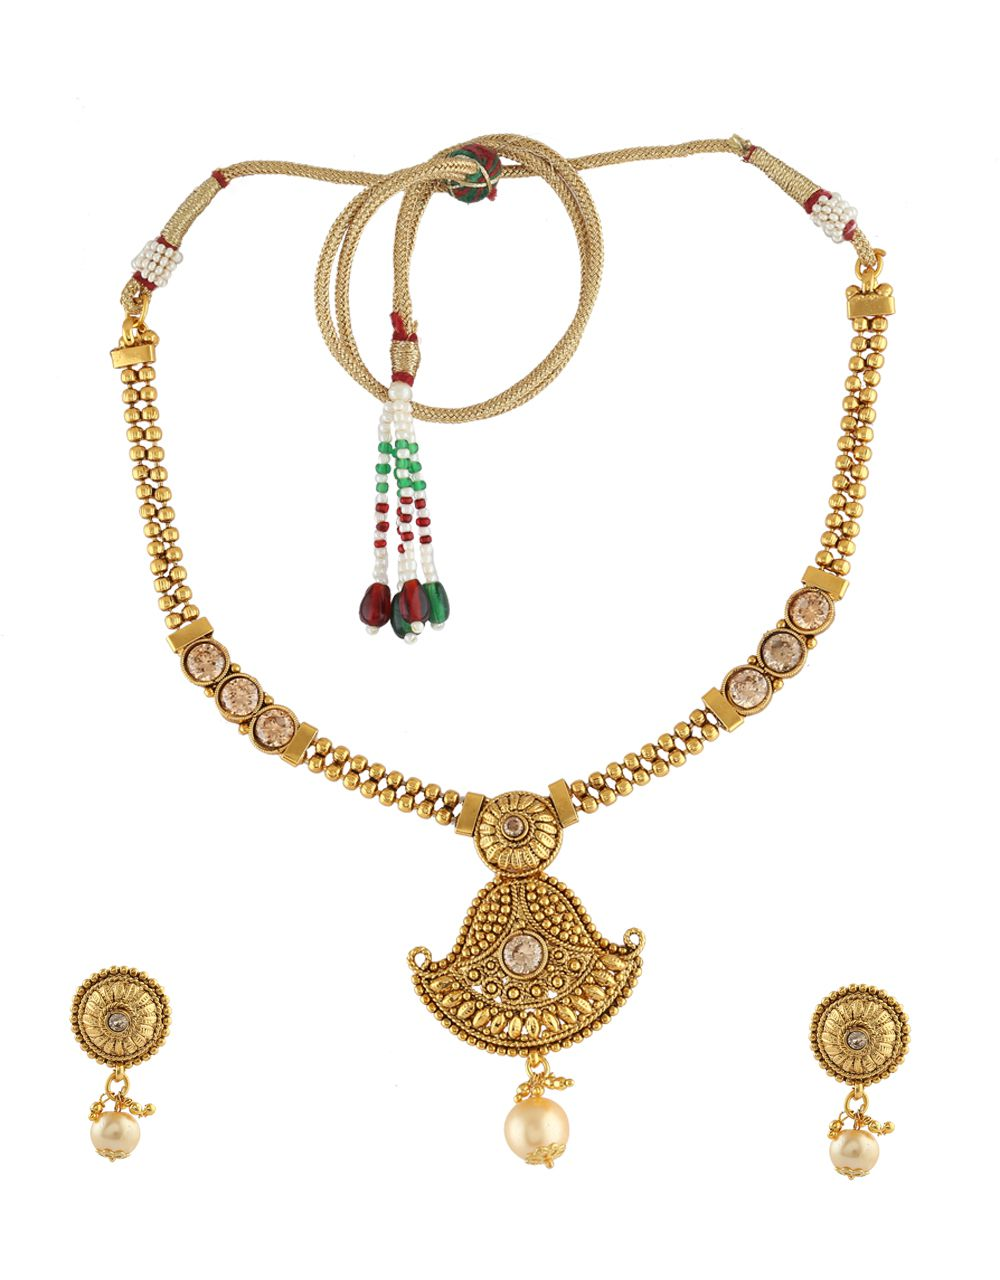 9a17993840 Anuradha Art Gold Tone Very Classy Designer Styled With Stones Traditional Necklace  Set for Women/Girls - Buy Anuradha Art Gold Tone Very Classy Designer ...